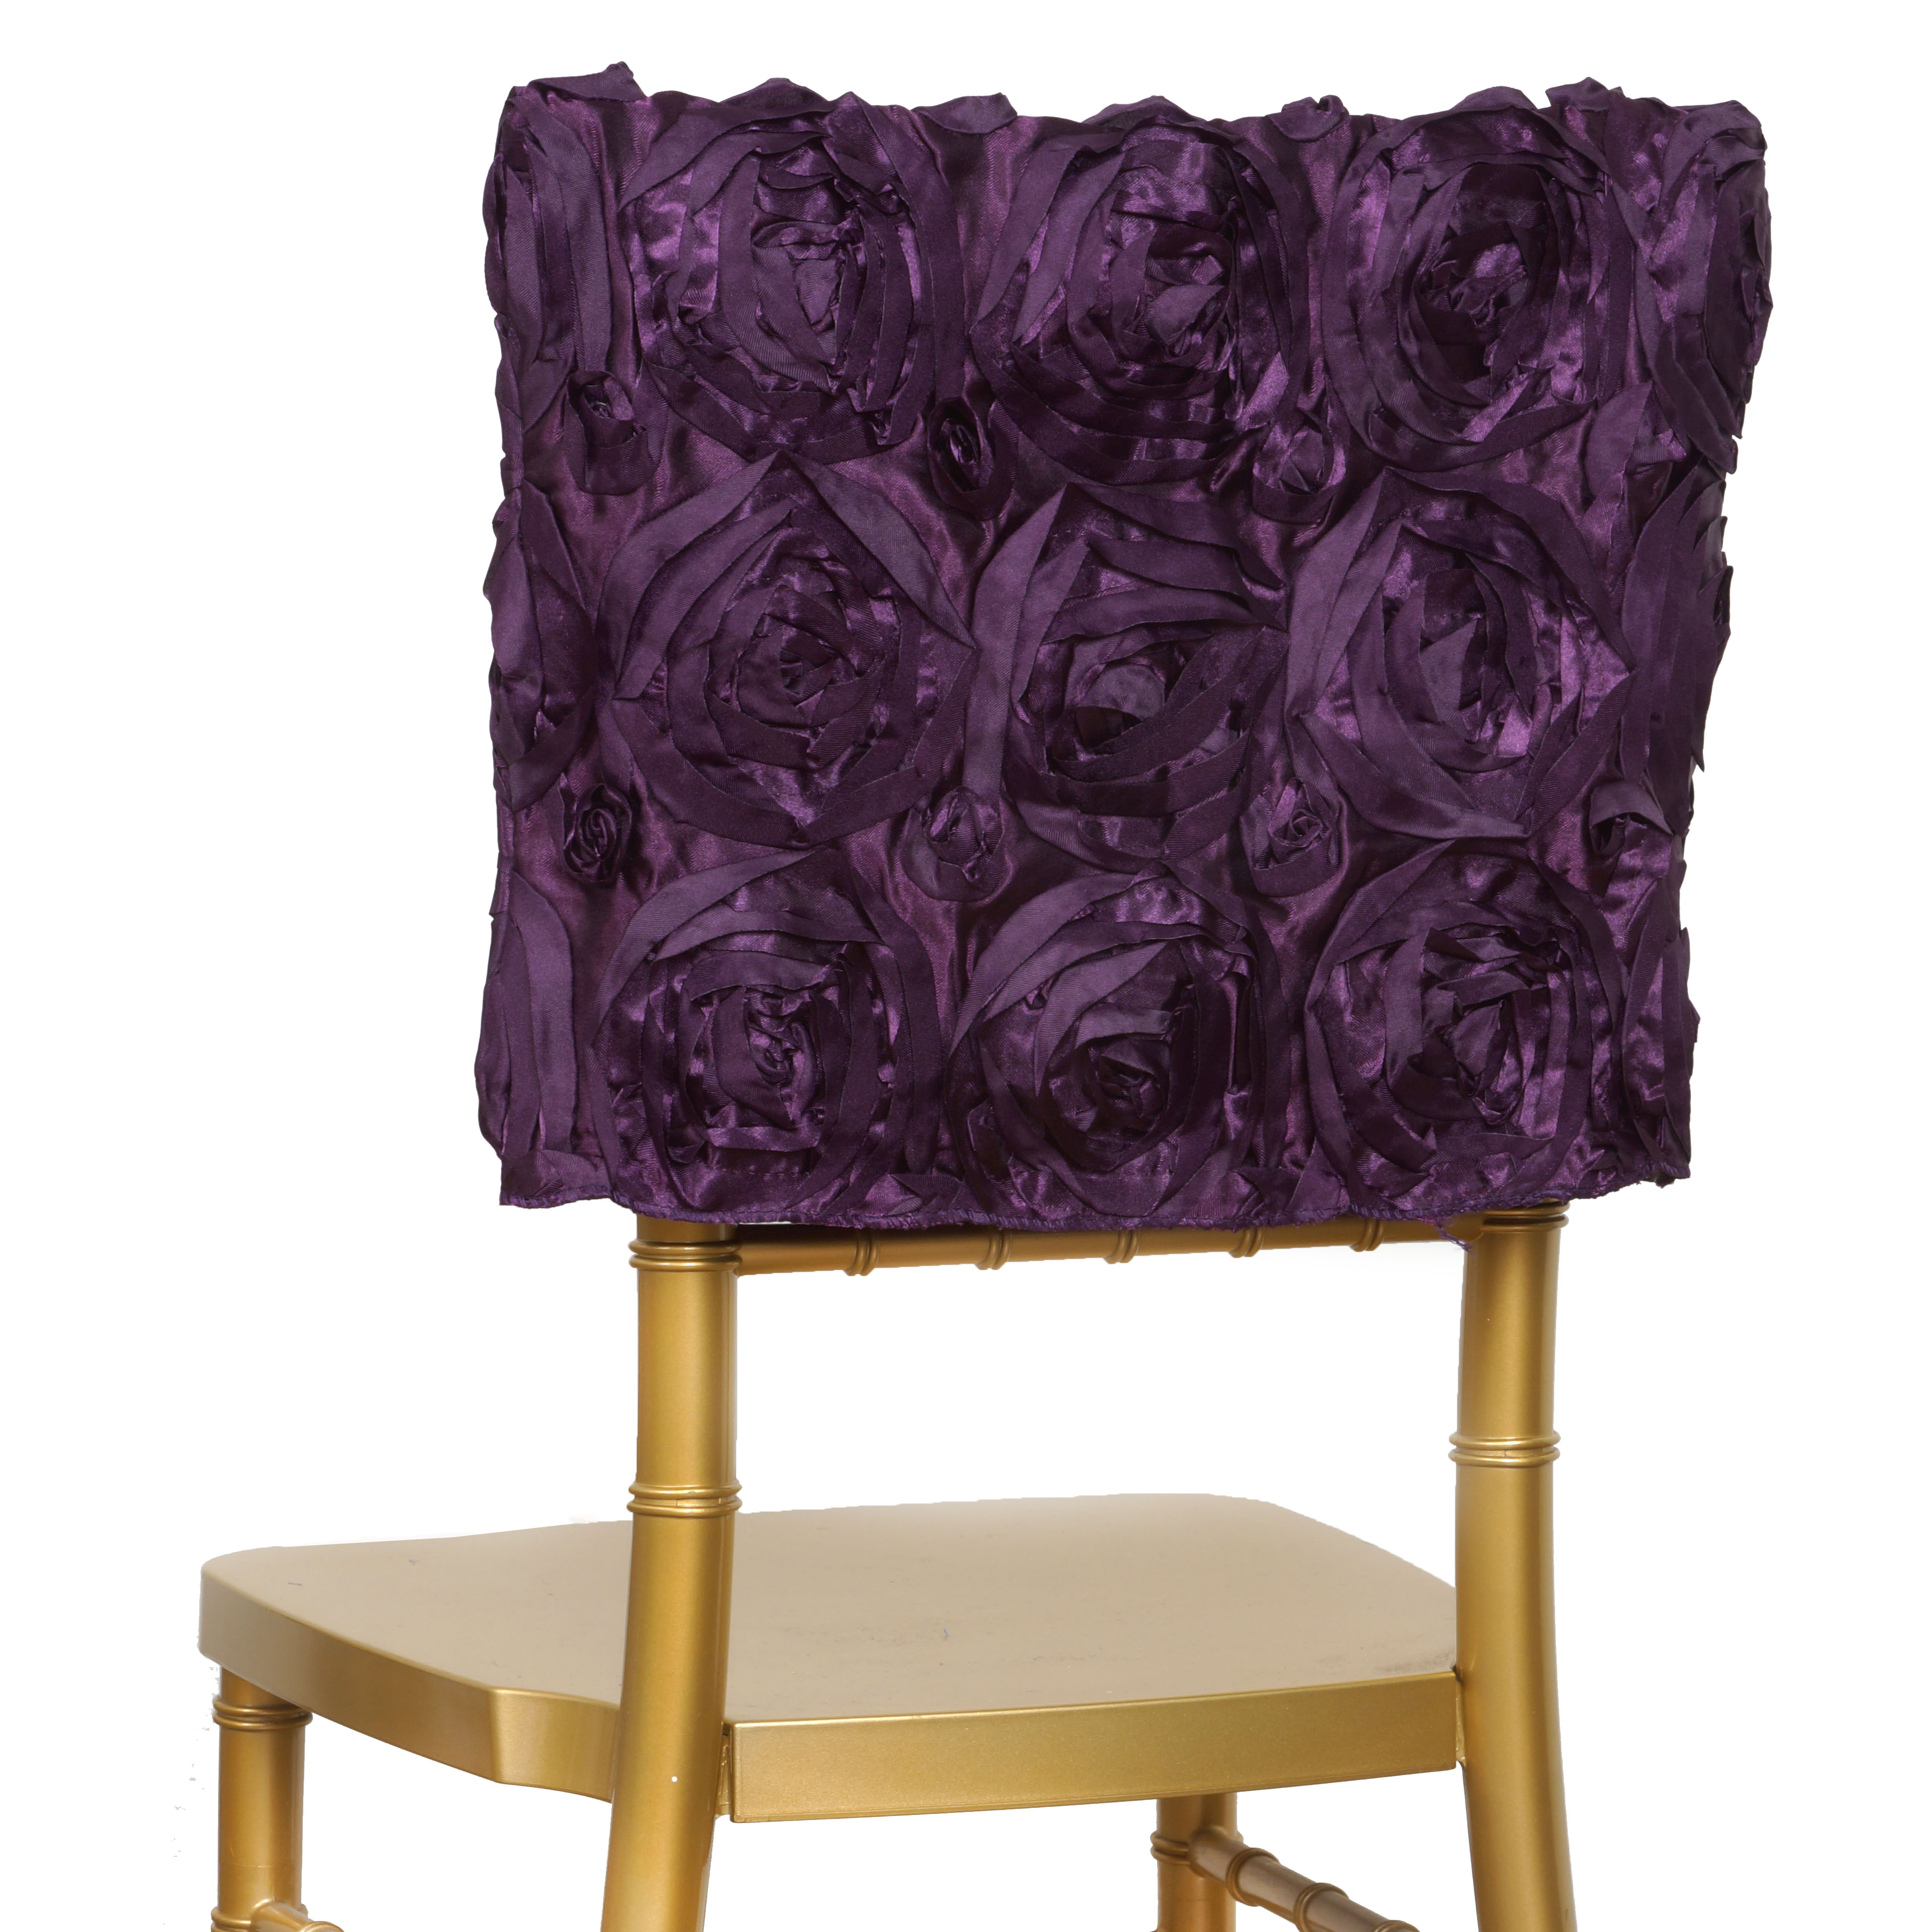 Peachy Details About Eggplant Purple Chair Cover Square Top Cap Party Wedding Ceremony Reception Sale Machost Co Dining Chair Design Ideas Machostcouk